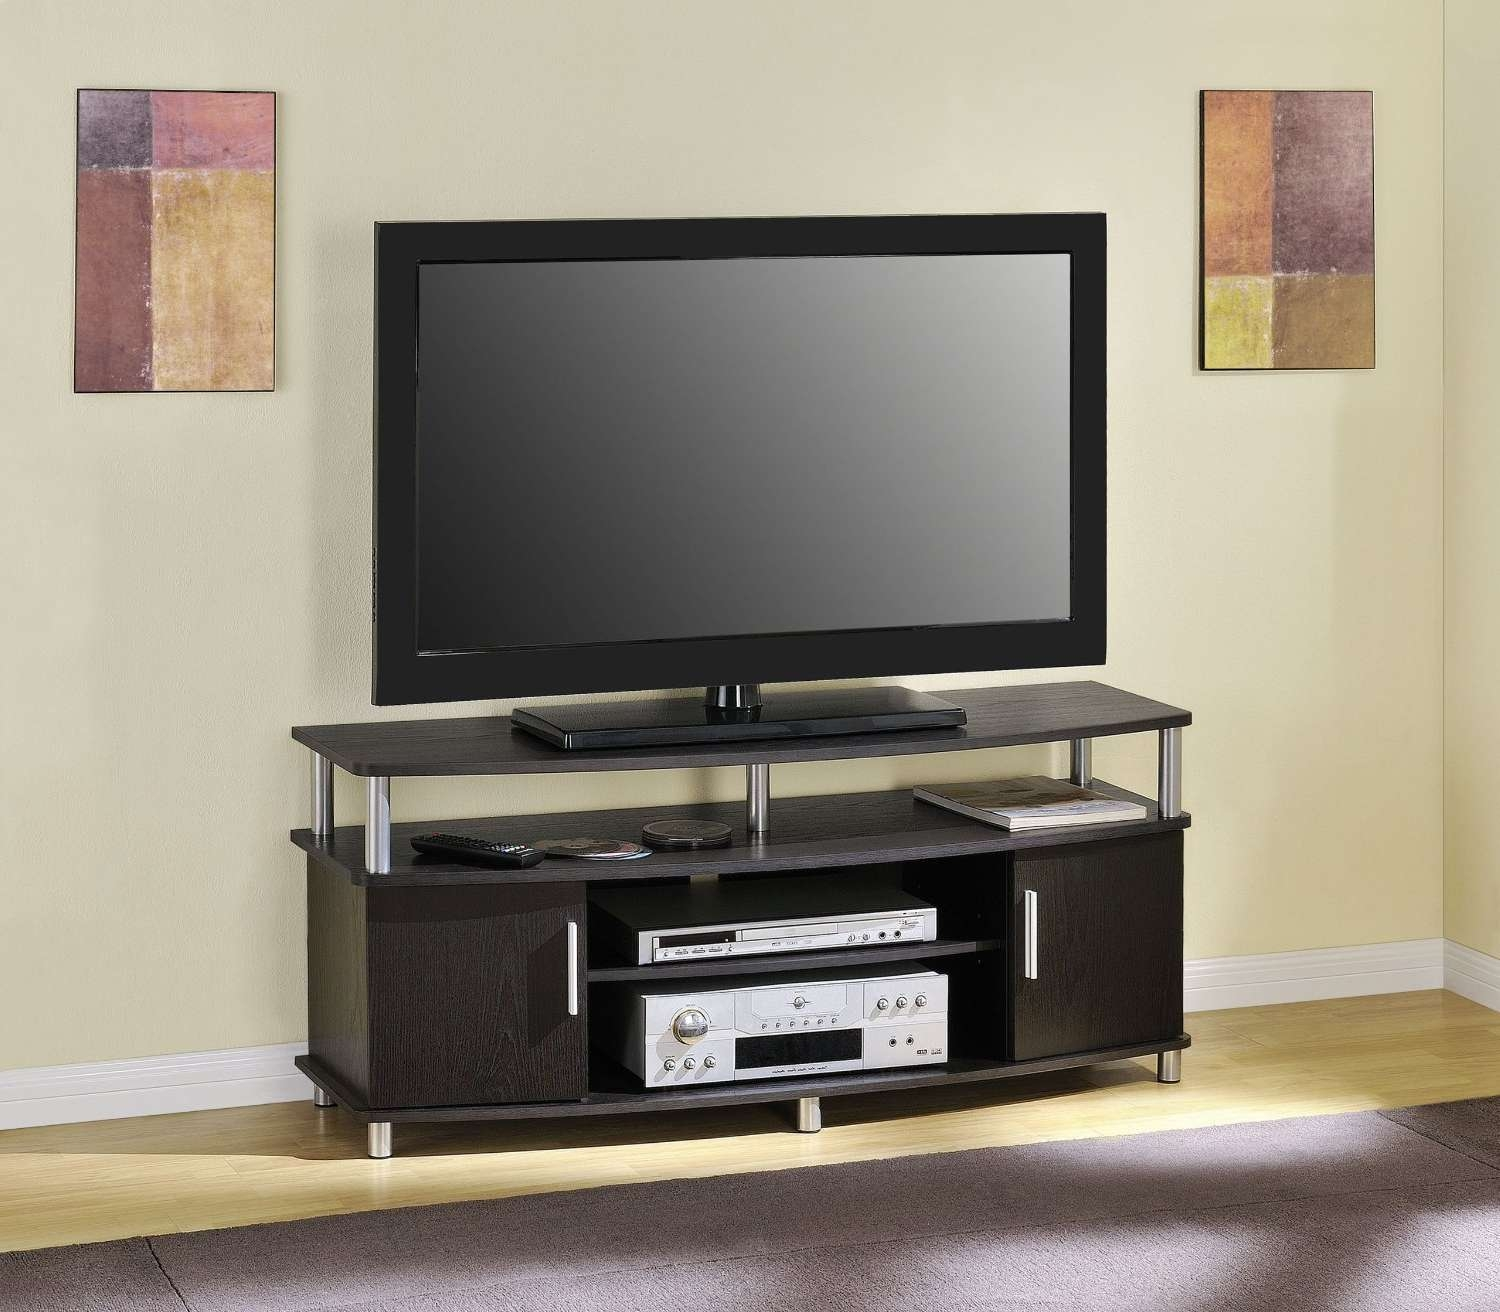 Small Black Oak Wood Tv Stand With Countertop And Cabinet Storage Intended For Contemporary Tv Stands For Flat Screens (View 11 of 15)